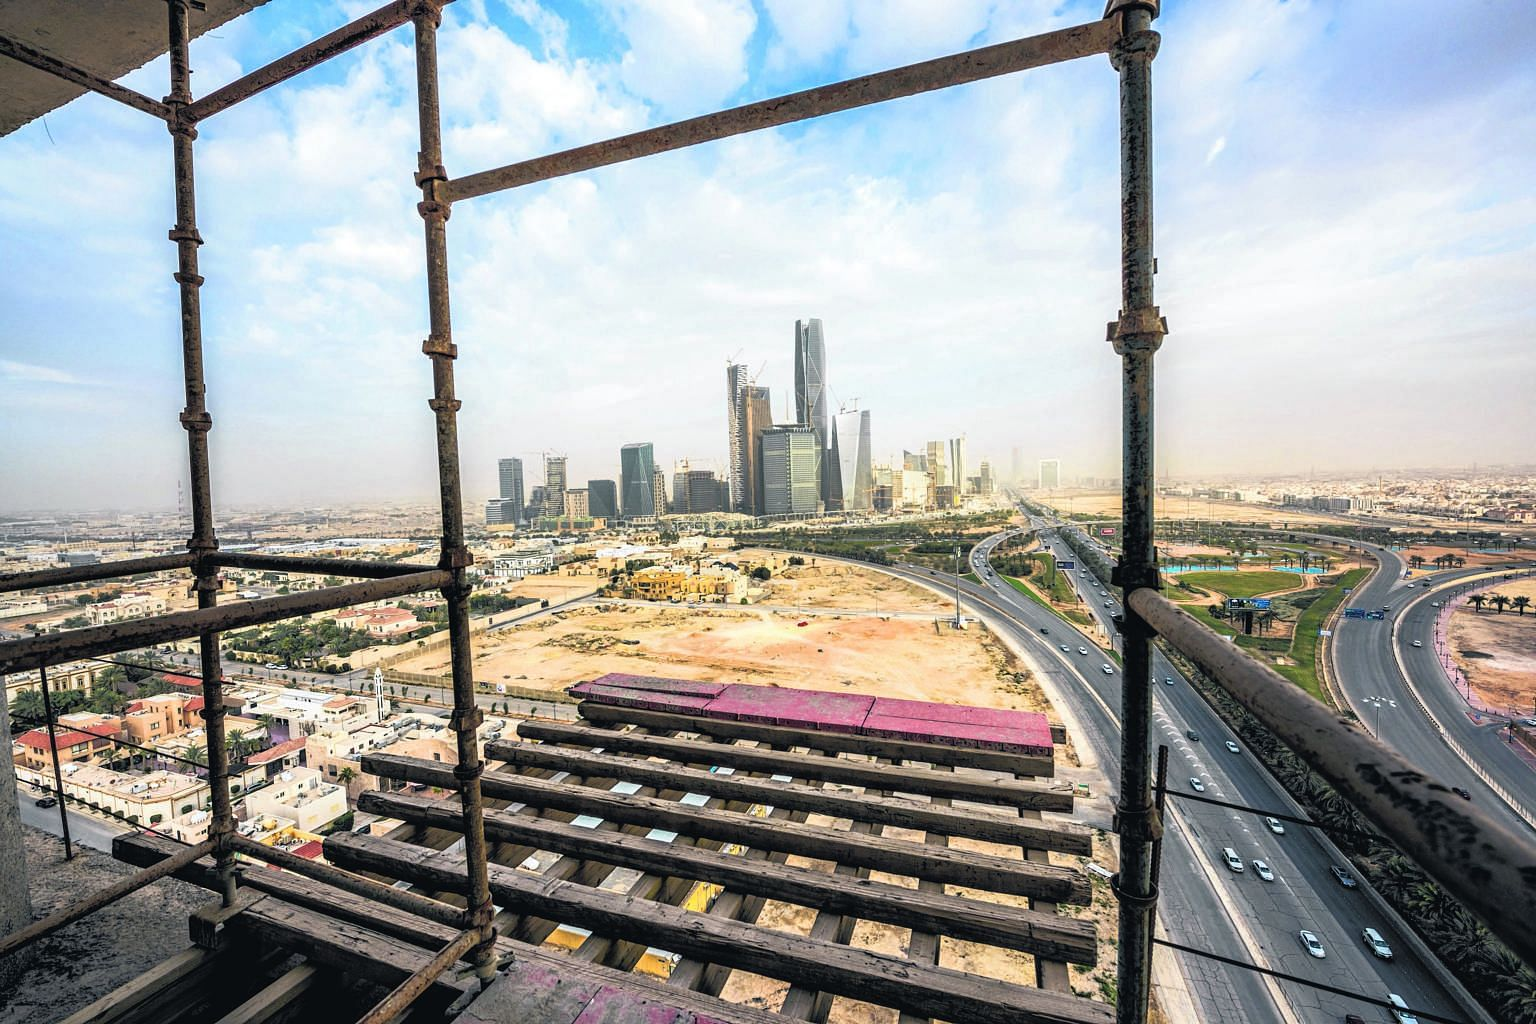 The King Abdullah financial district, under construction in Riyadh. No region is more affected by the decline in oil prices than the six nations of the Gulf Cooperation Council. Saudi Arabia, the most powerful of the GCC states, could burn through it